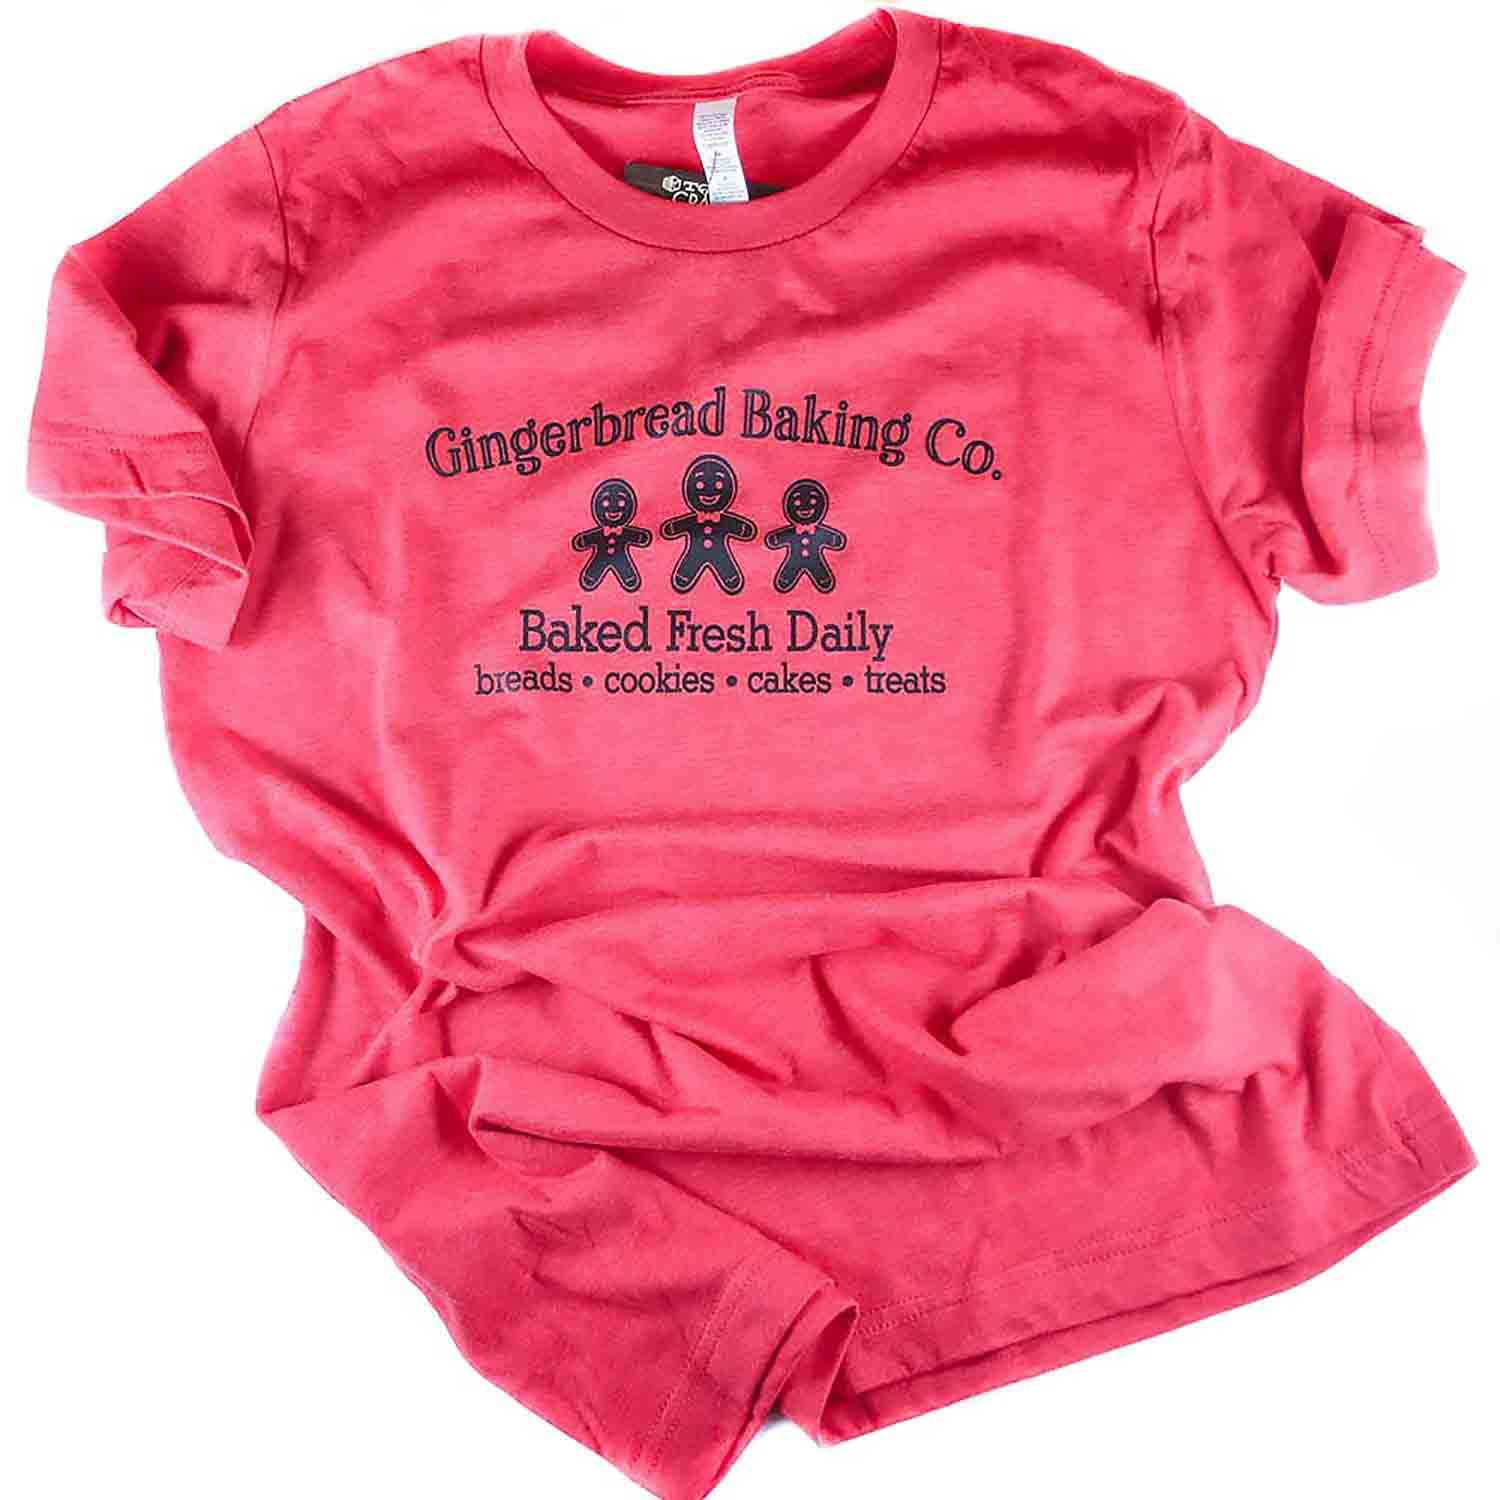 Red Gingerbread Baking Co. T-Shirt - Small